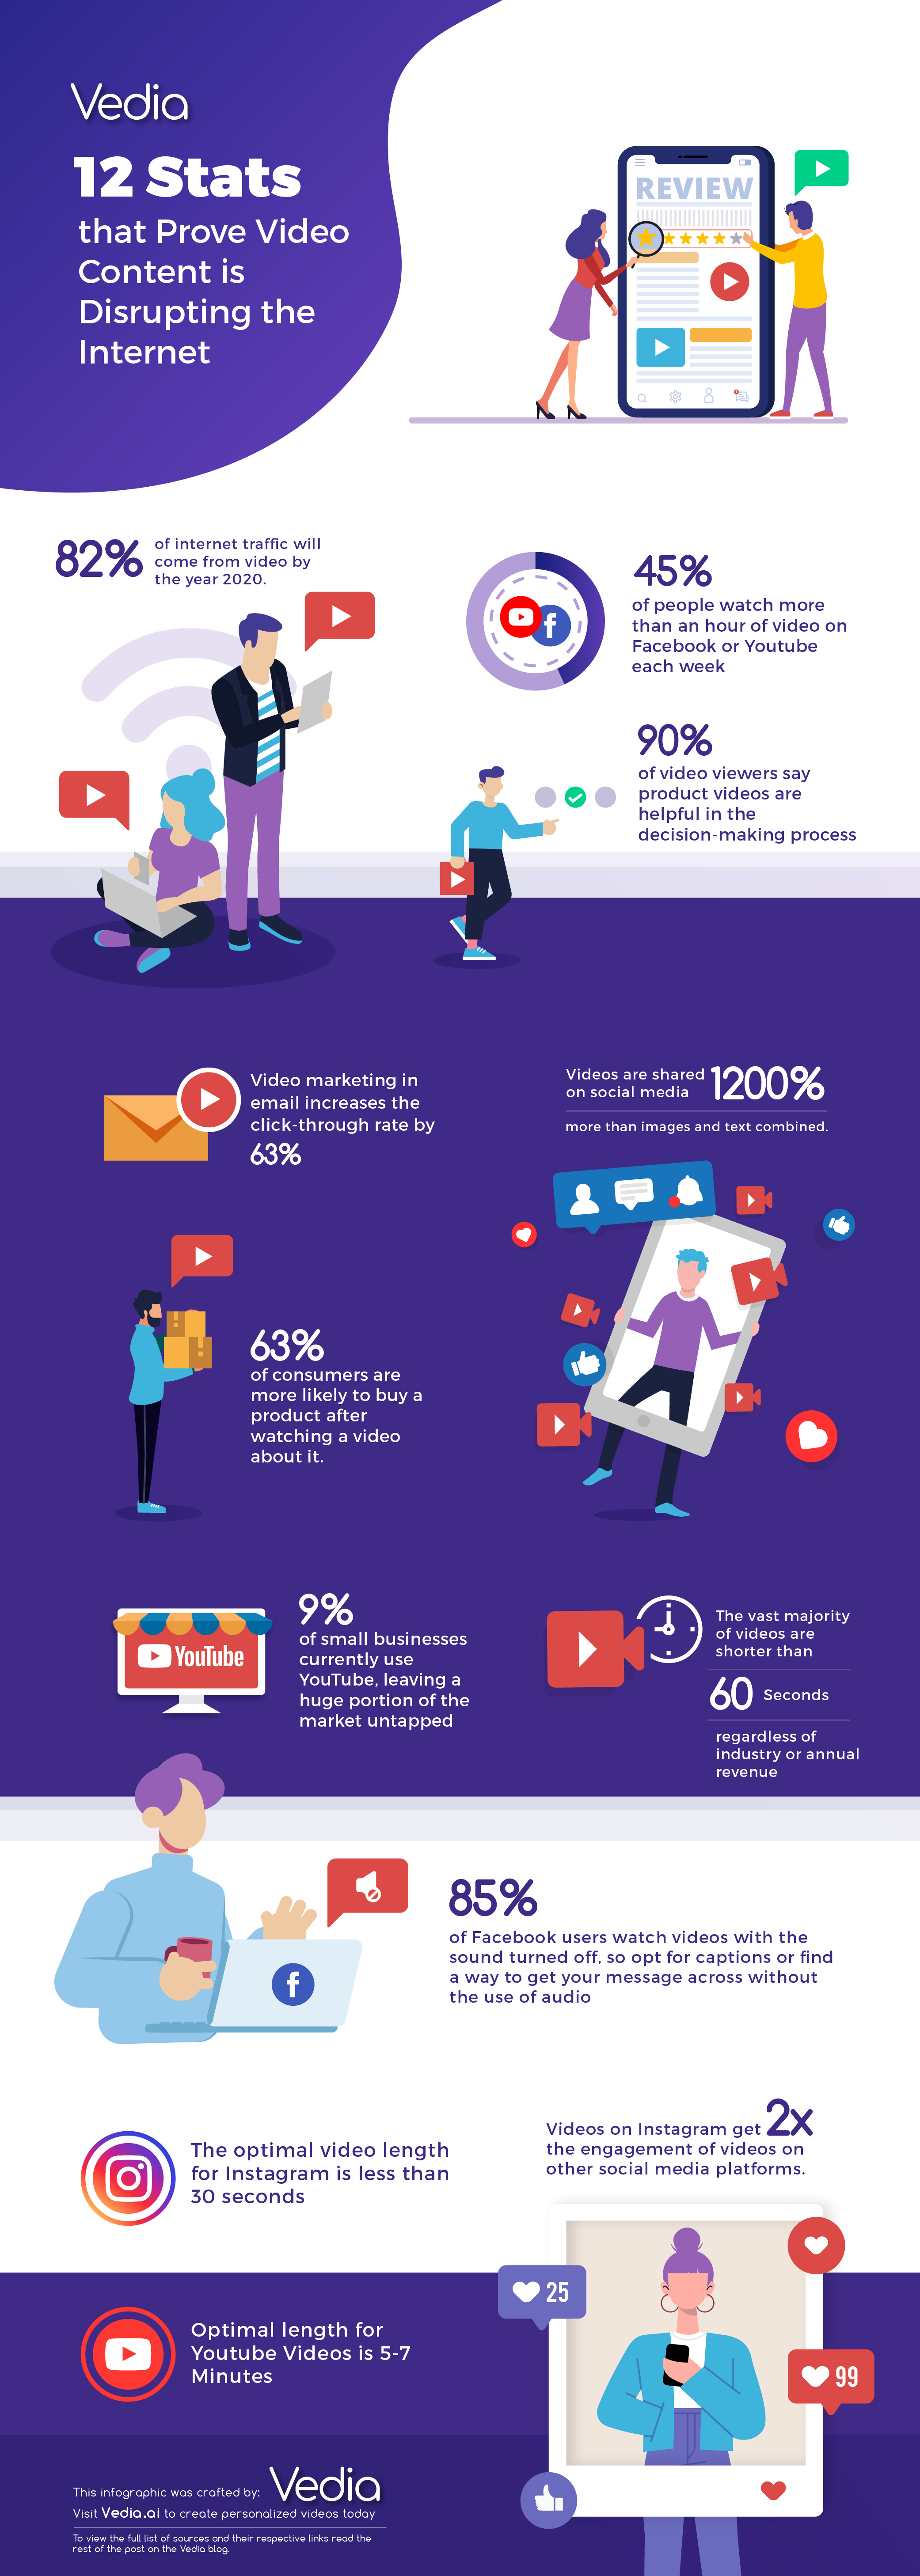 Infographic on how video content is disrupting the internet